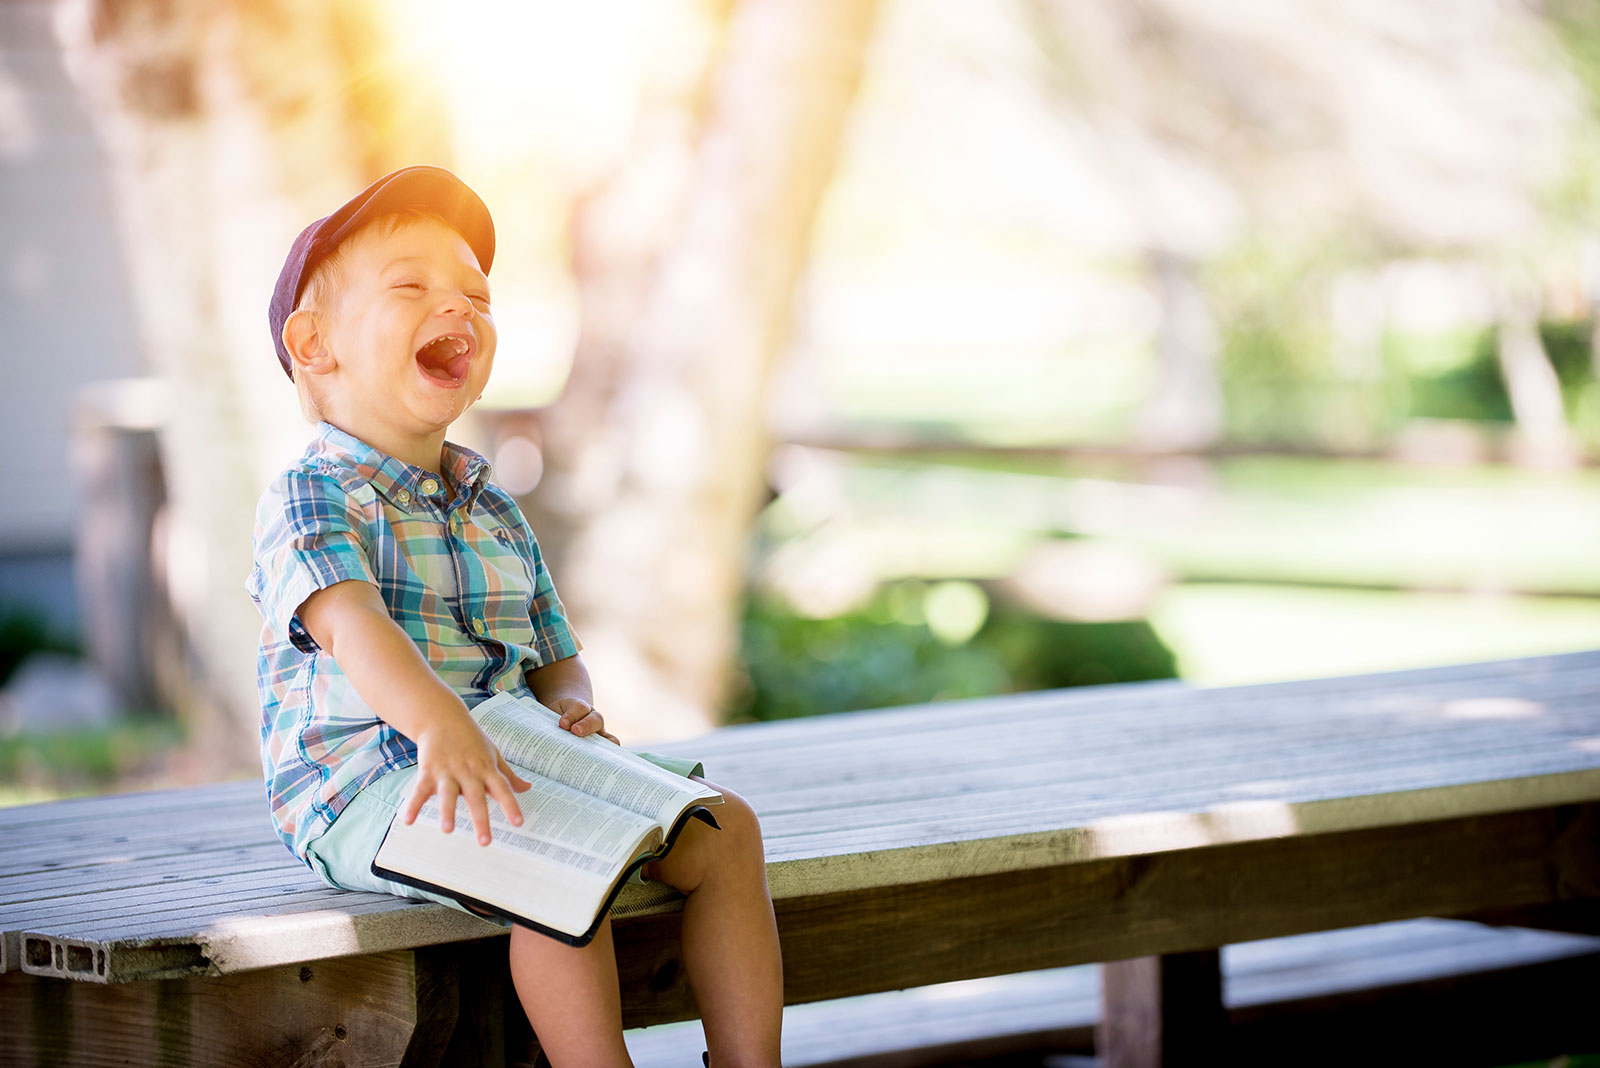 The Science of Happiness: research based tools to boost wellbeing and resilience